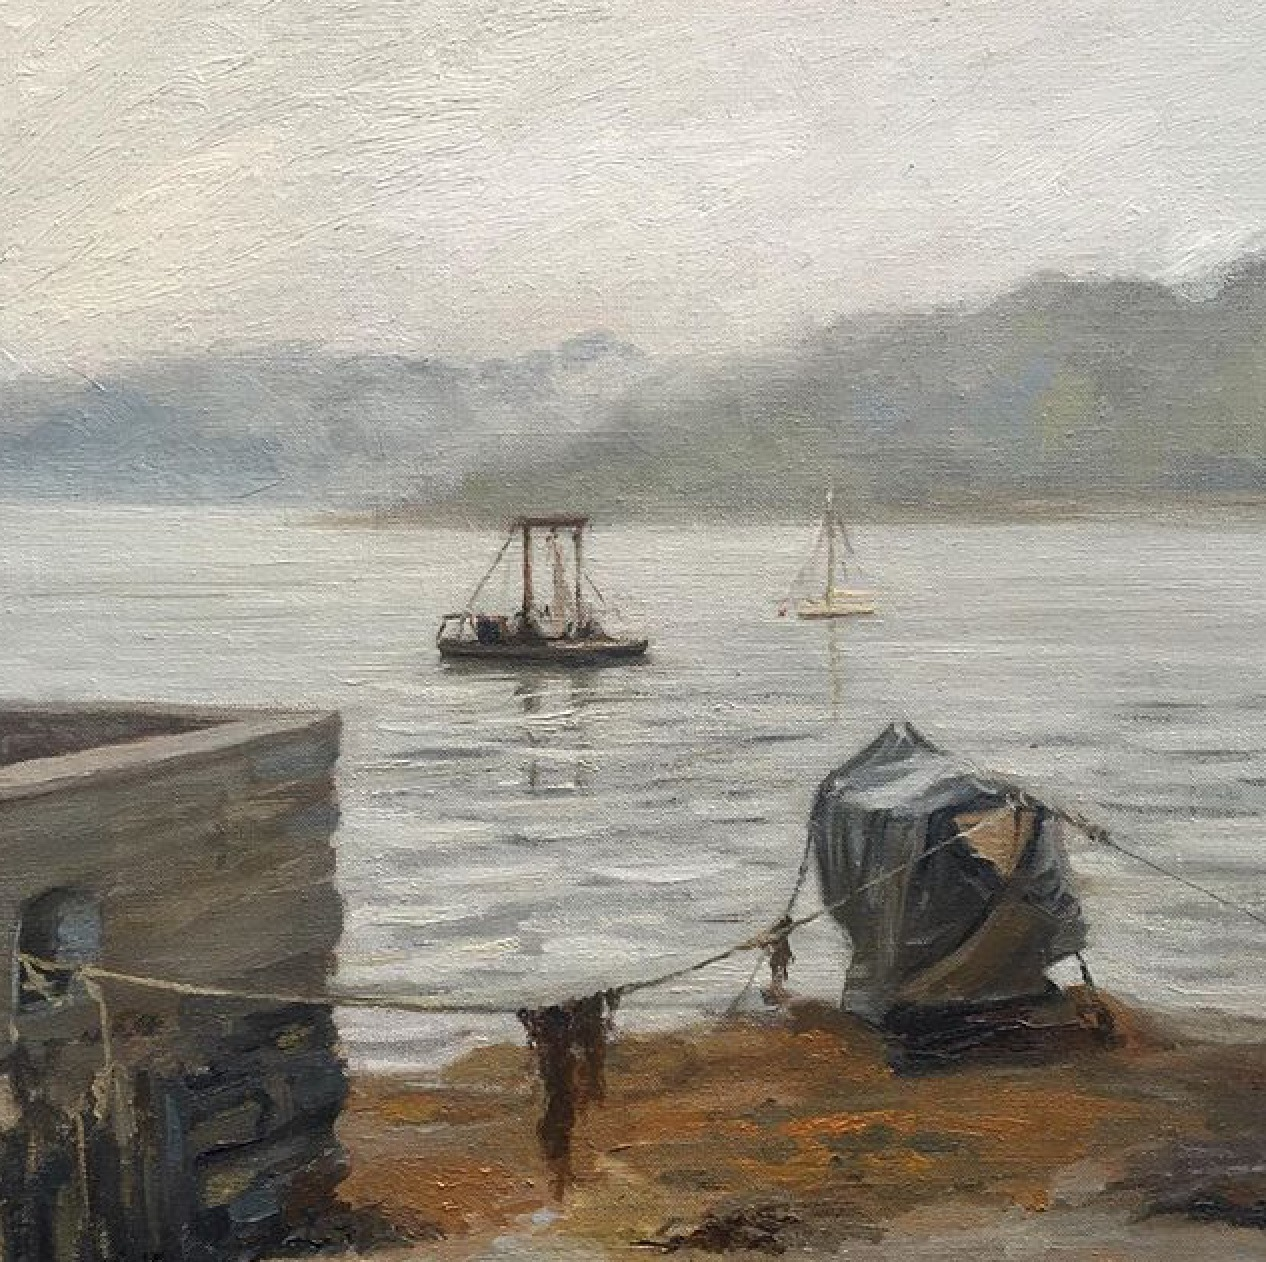 Misty Morning by the Percuil Boat Yard